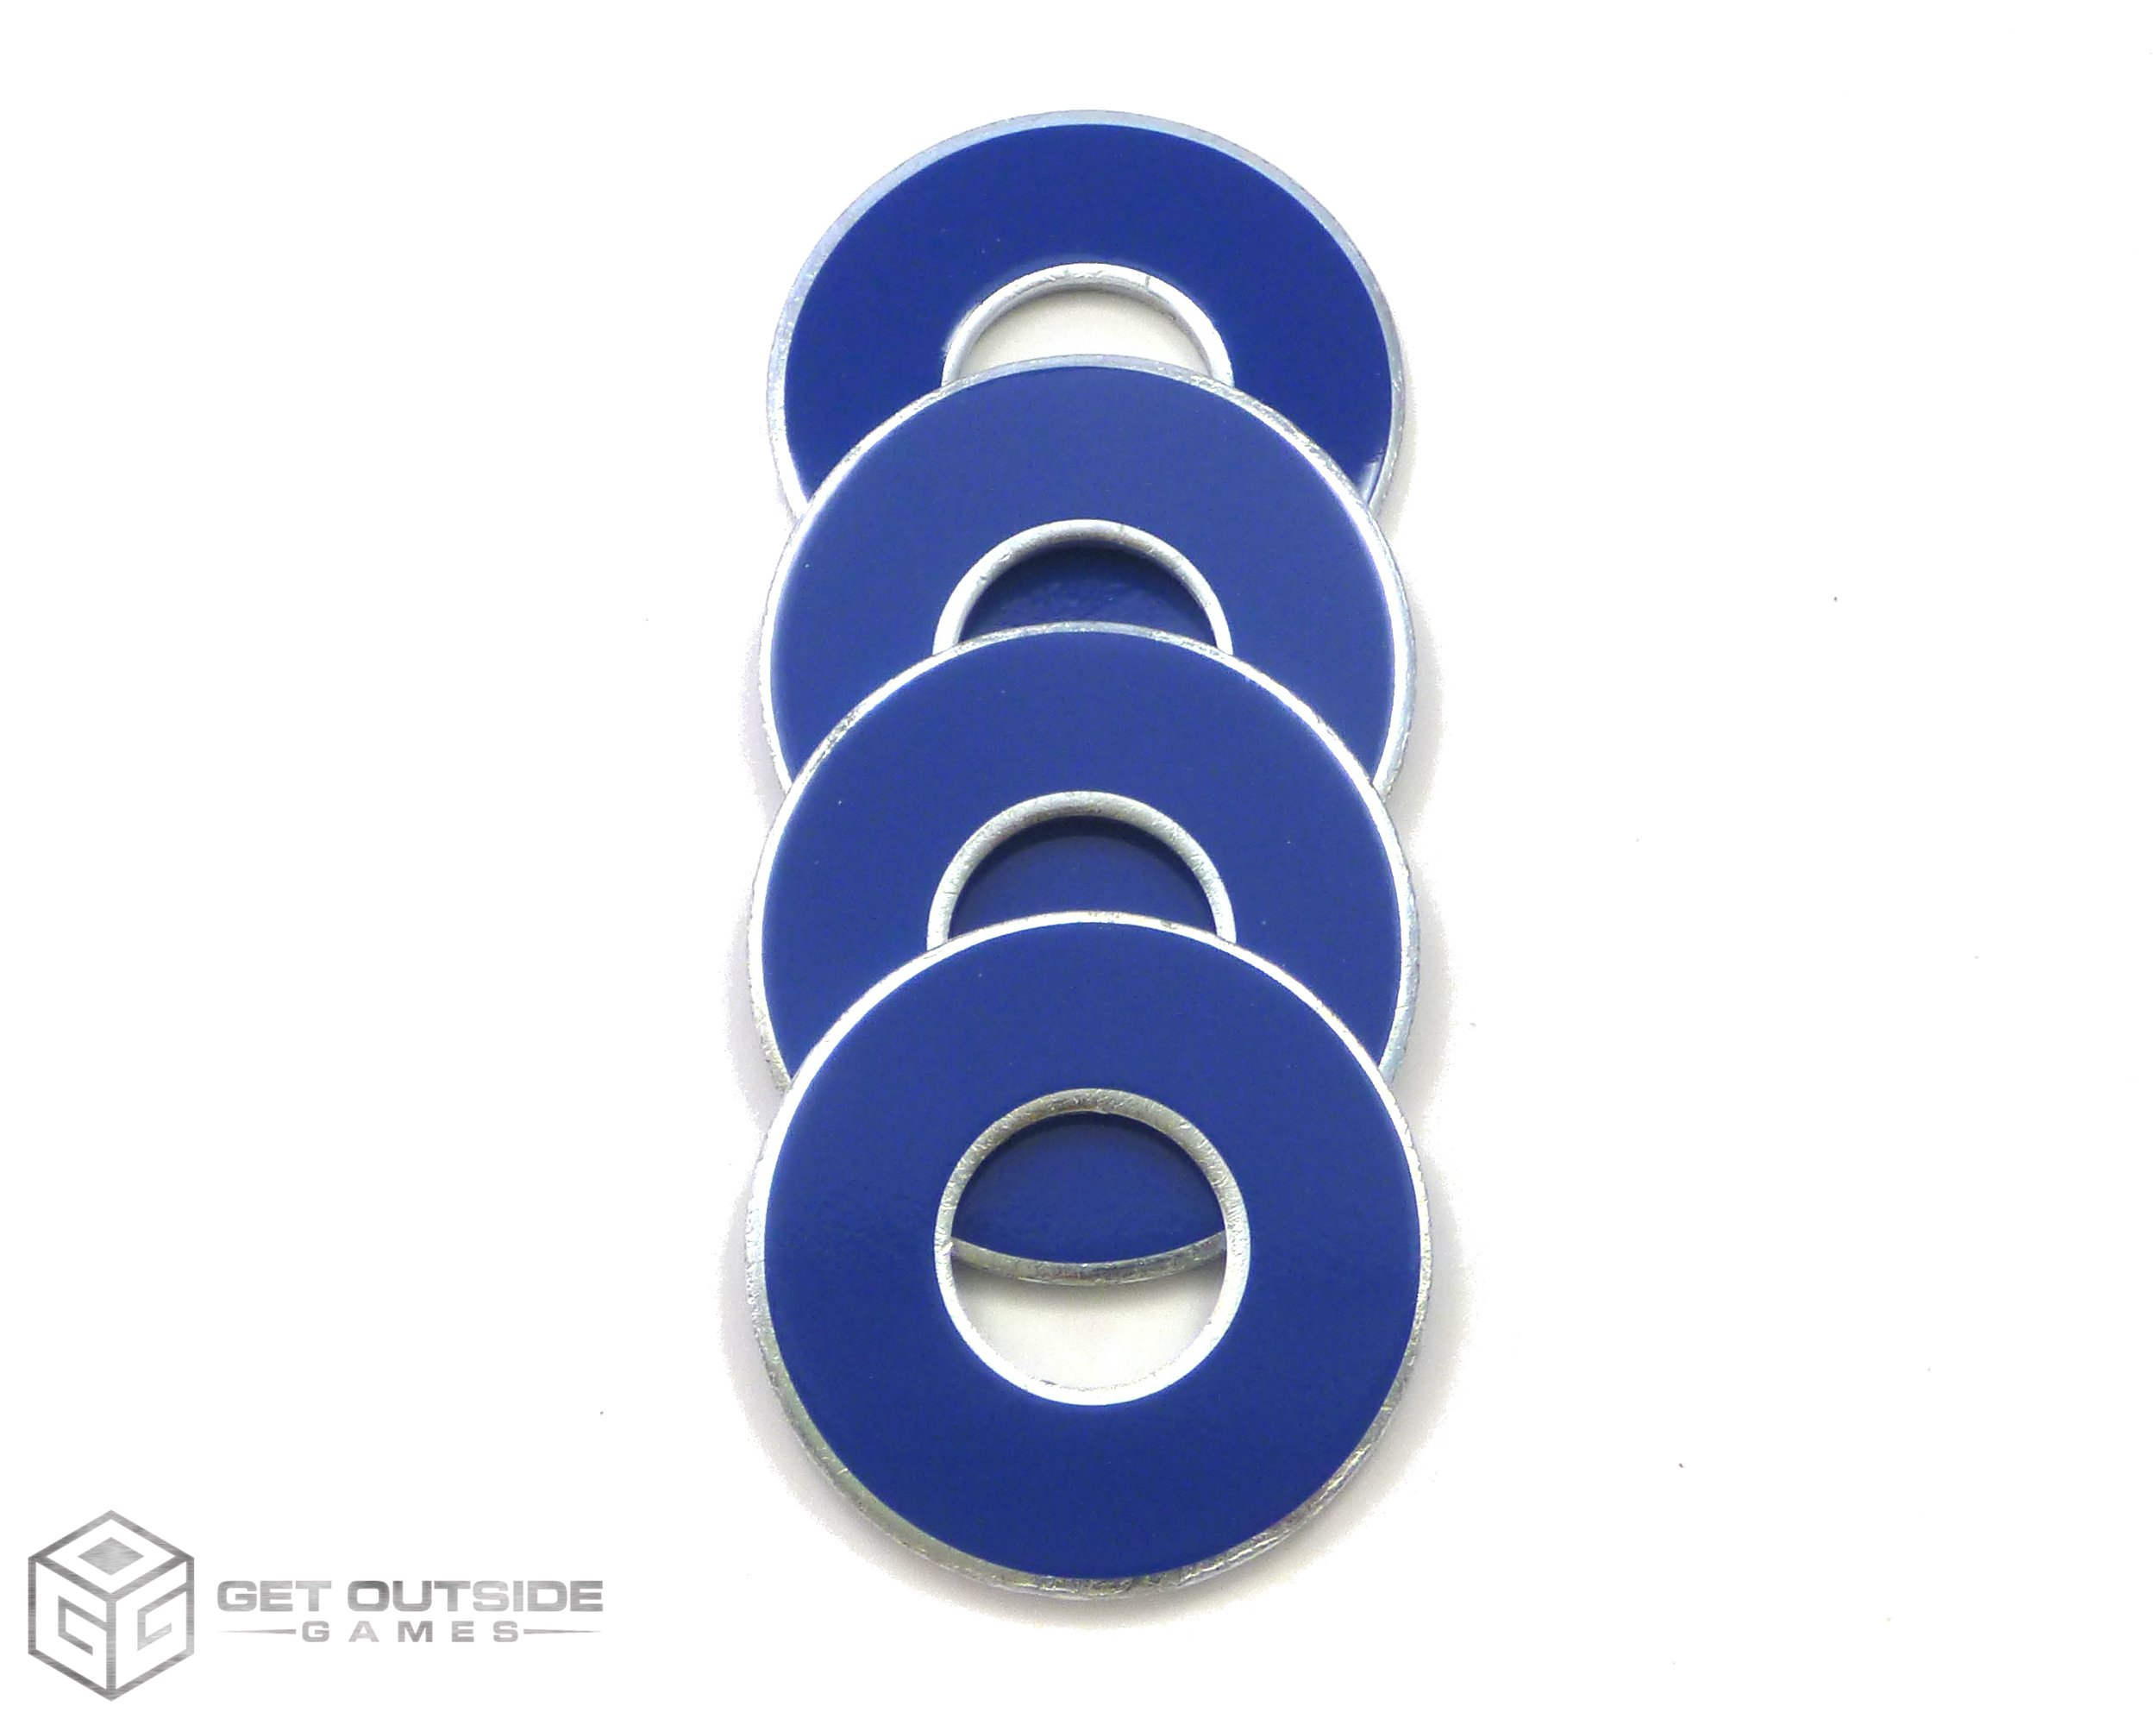 Get Outside Games 4 VVashers - Washer Toss/Washer Game Washers (Blue-Royal, 4 VVashers)